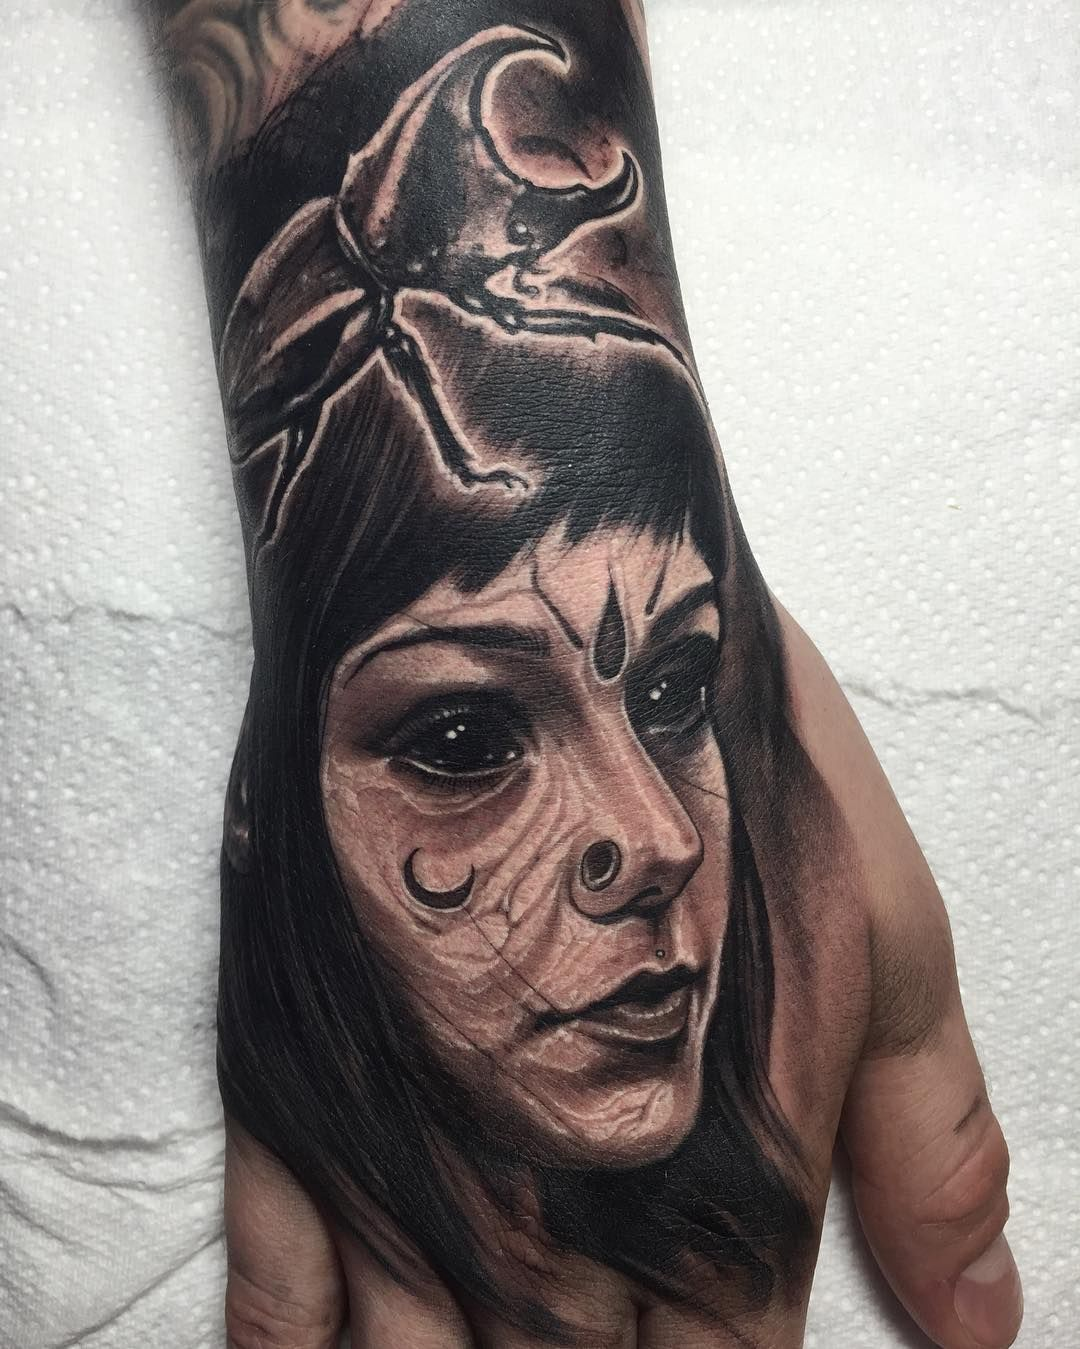 Grace Neutral face by Anrijs Straume (@ anrijsstraume) #silverbackink #killerink #hustlebutterdeluxe #portrait #fkirons #graceneutral